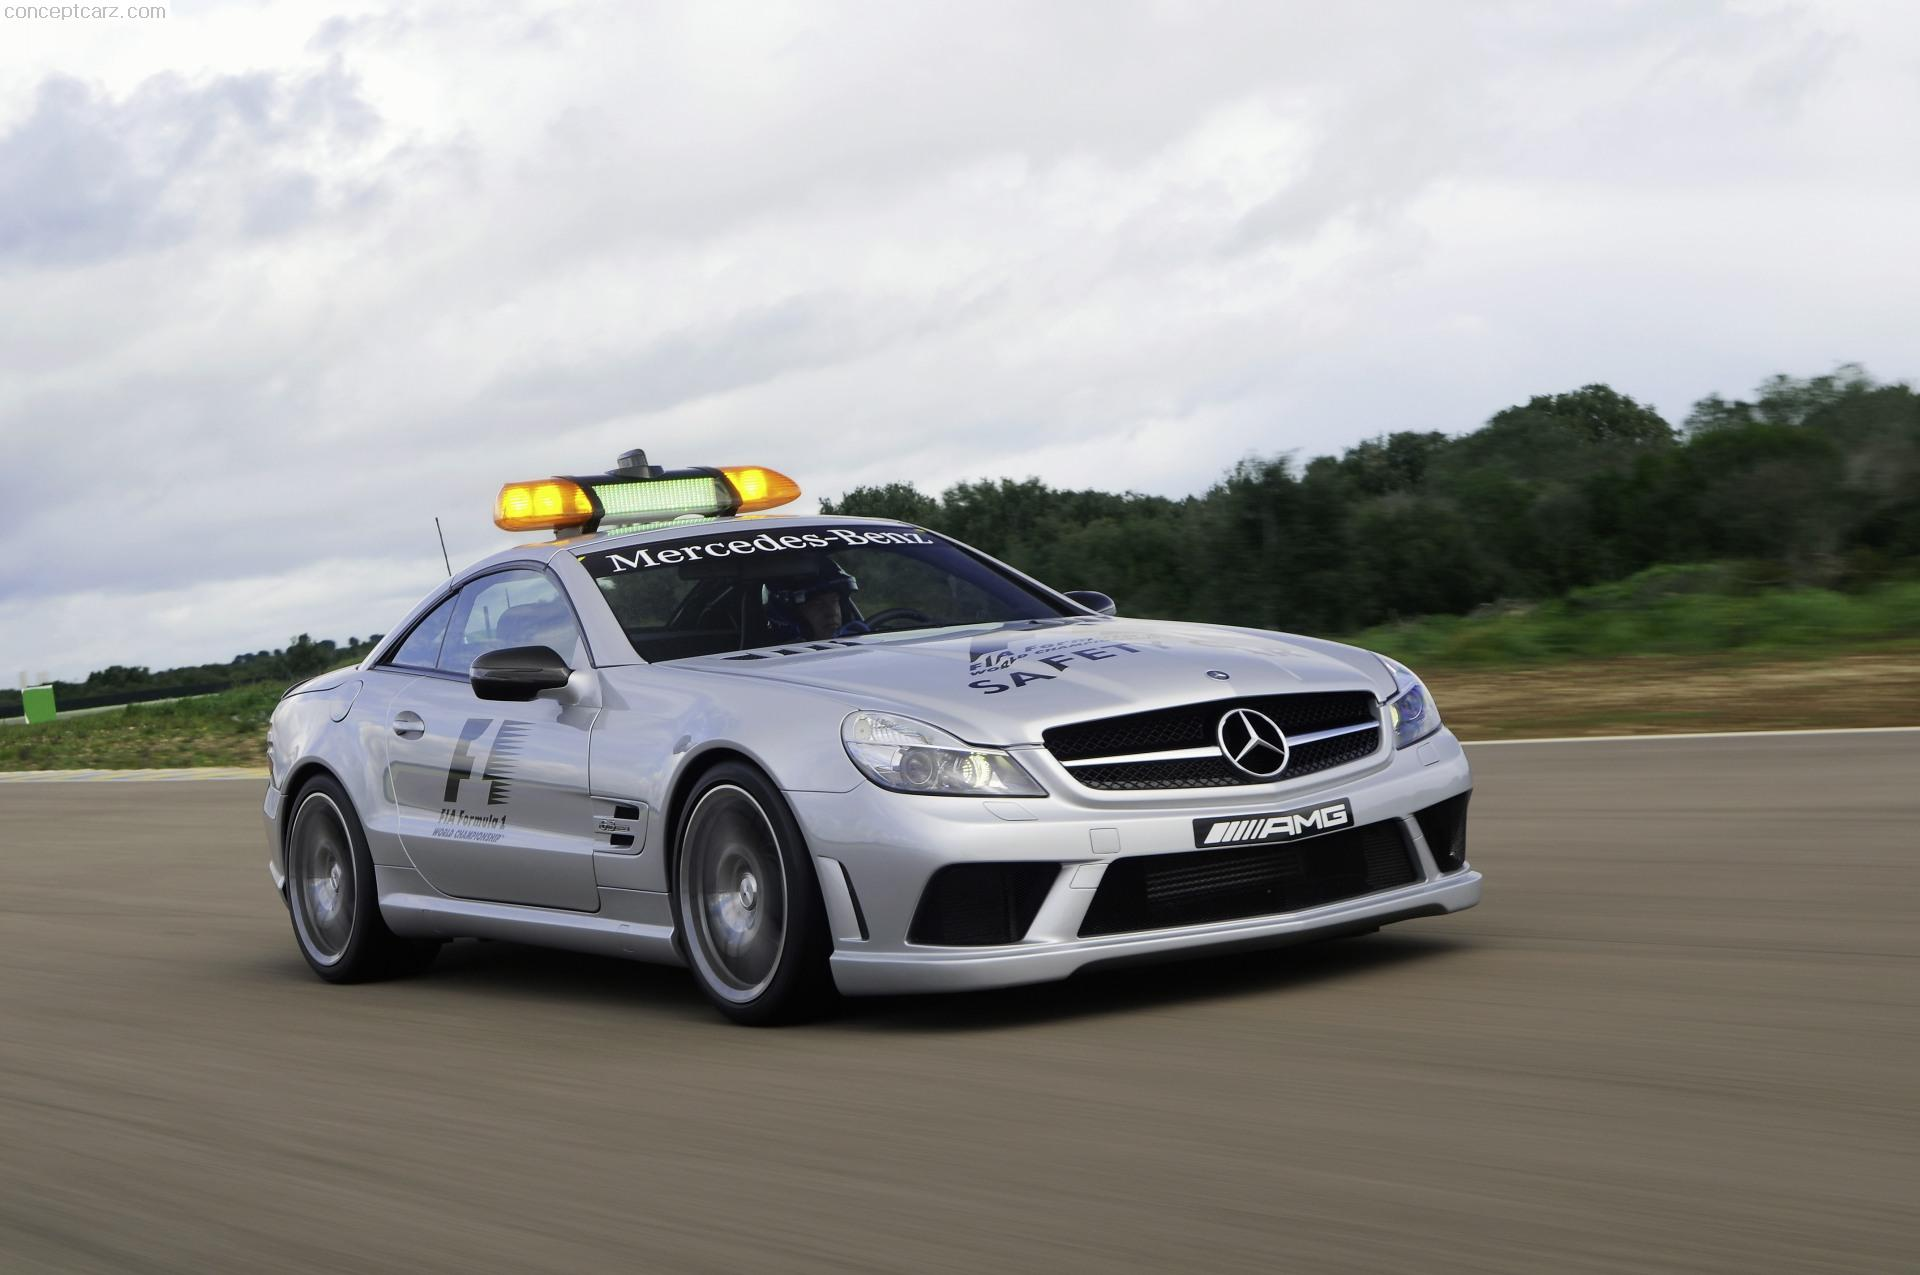 2009 mercedes benz sl 63 amg f1 safety car. Black Bedroom Furniture Sets. Home Design Ideas